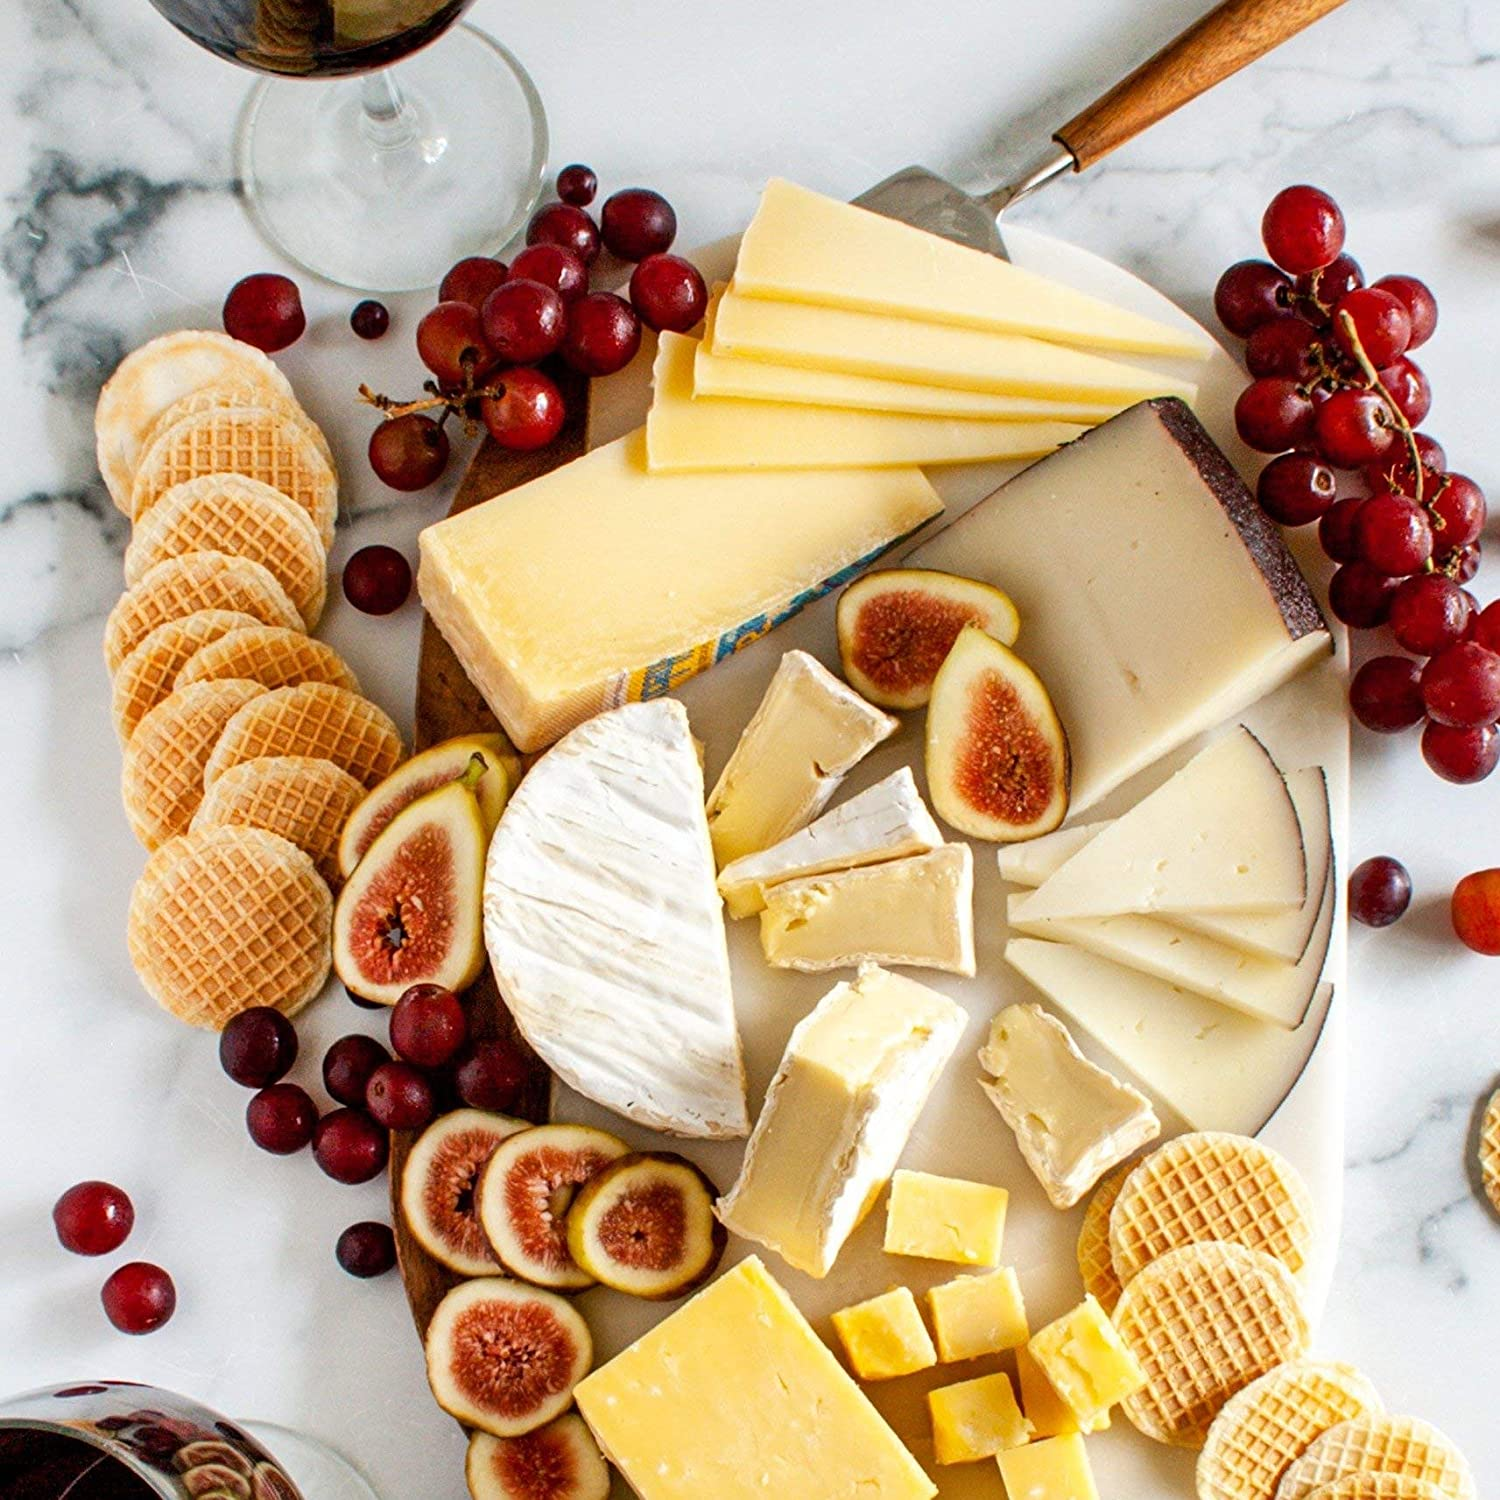 The Best of Europe Cheese Assortment (2 pound) - Finest Gourmet European Cheeses - A Variety Of French Cheese, English Cheese, Italian Cheese, and Spanish Cheese